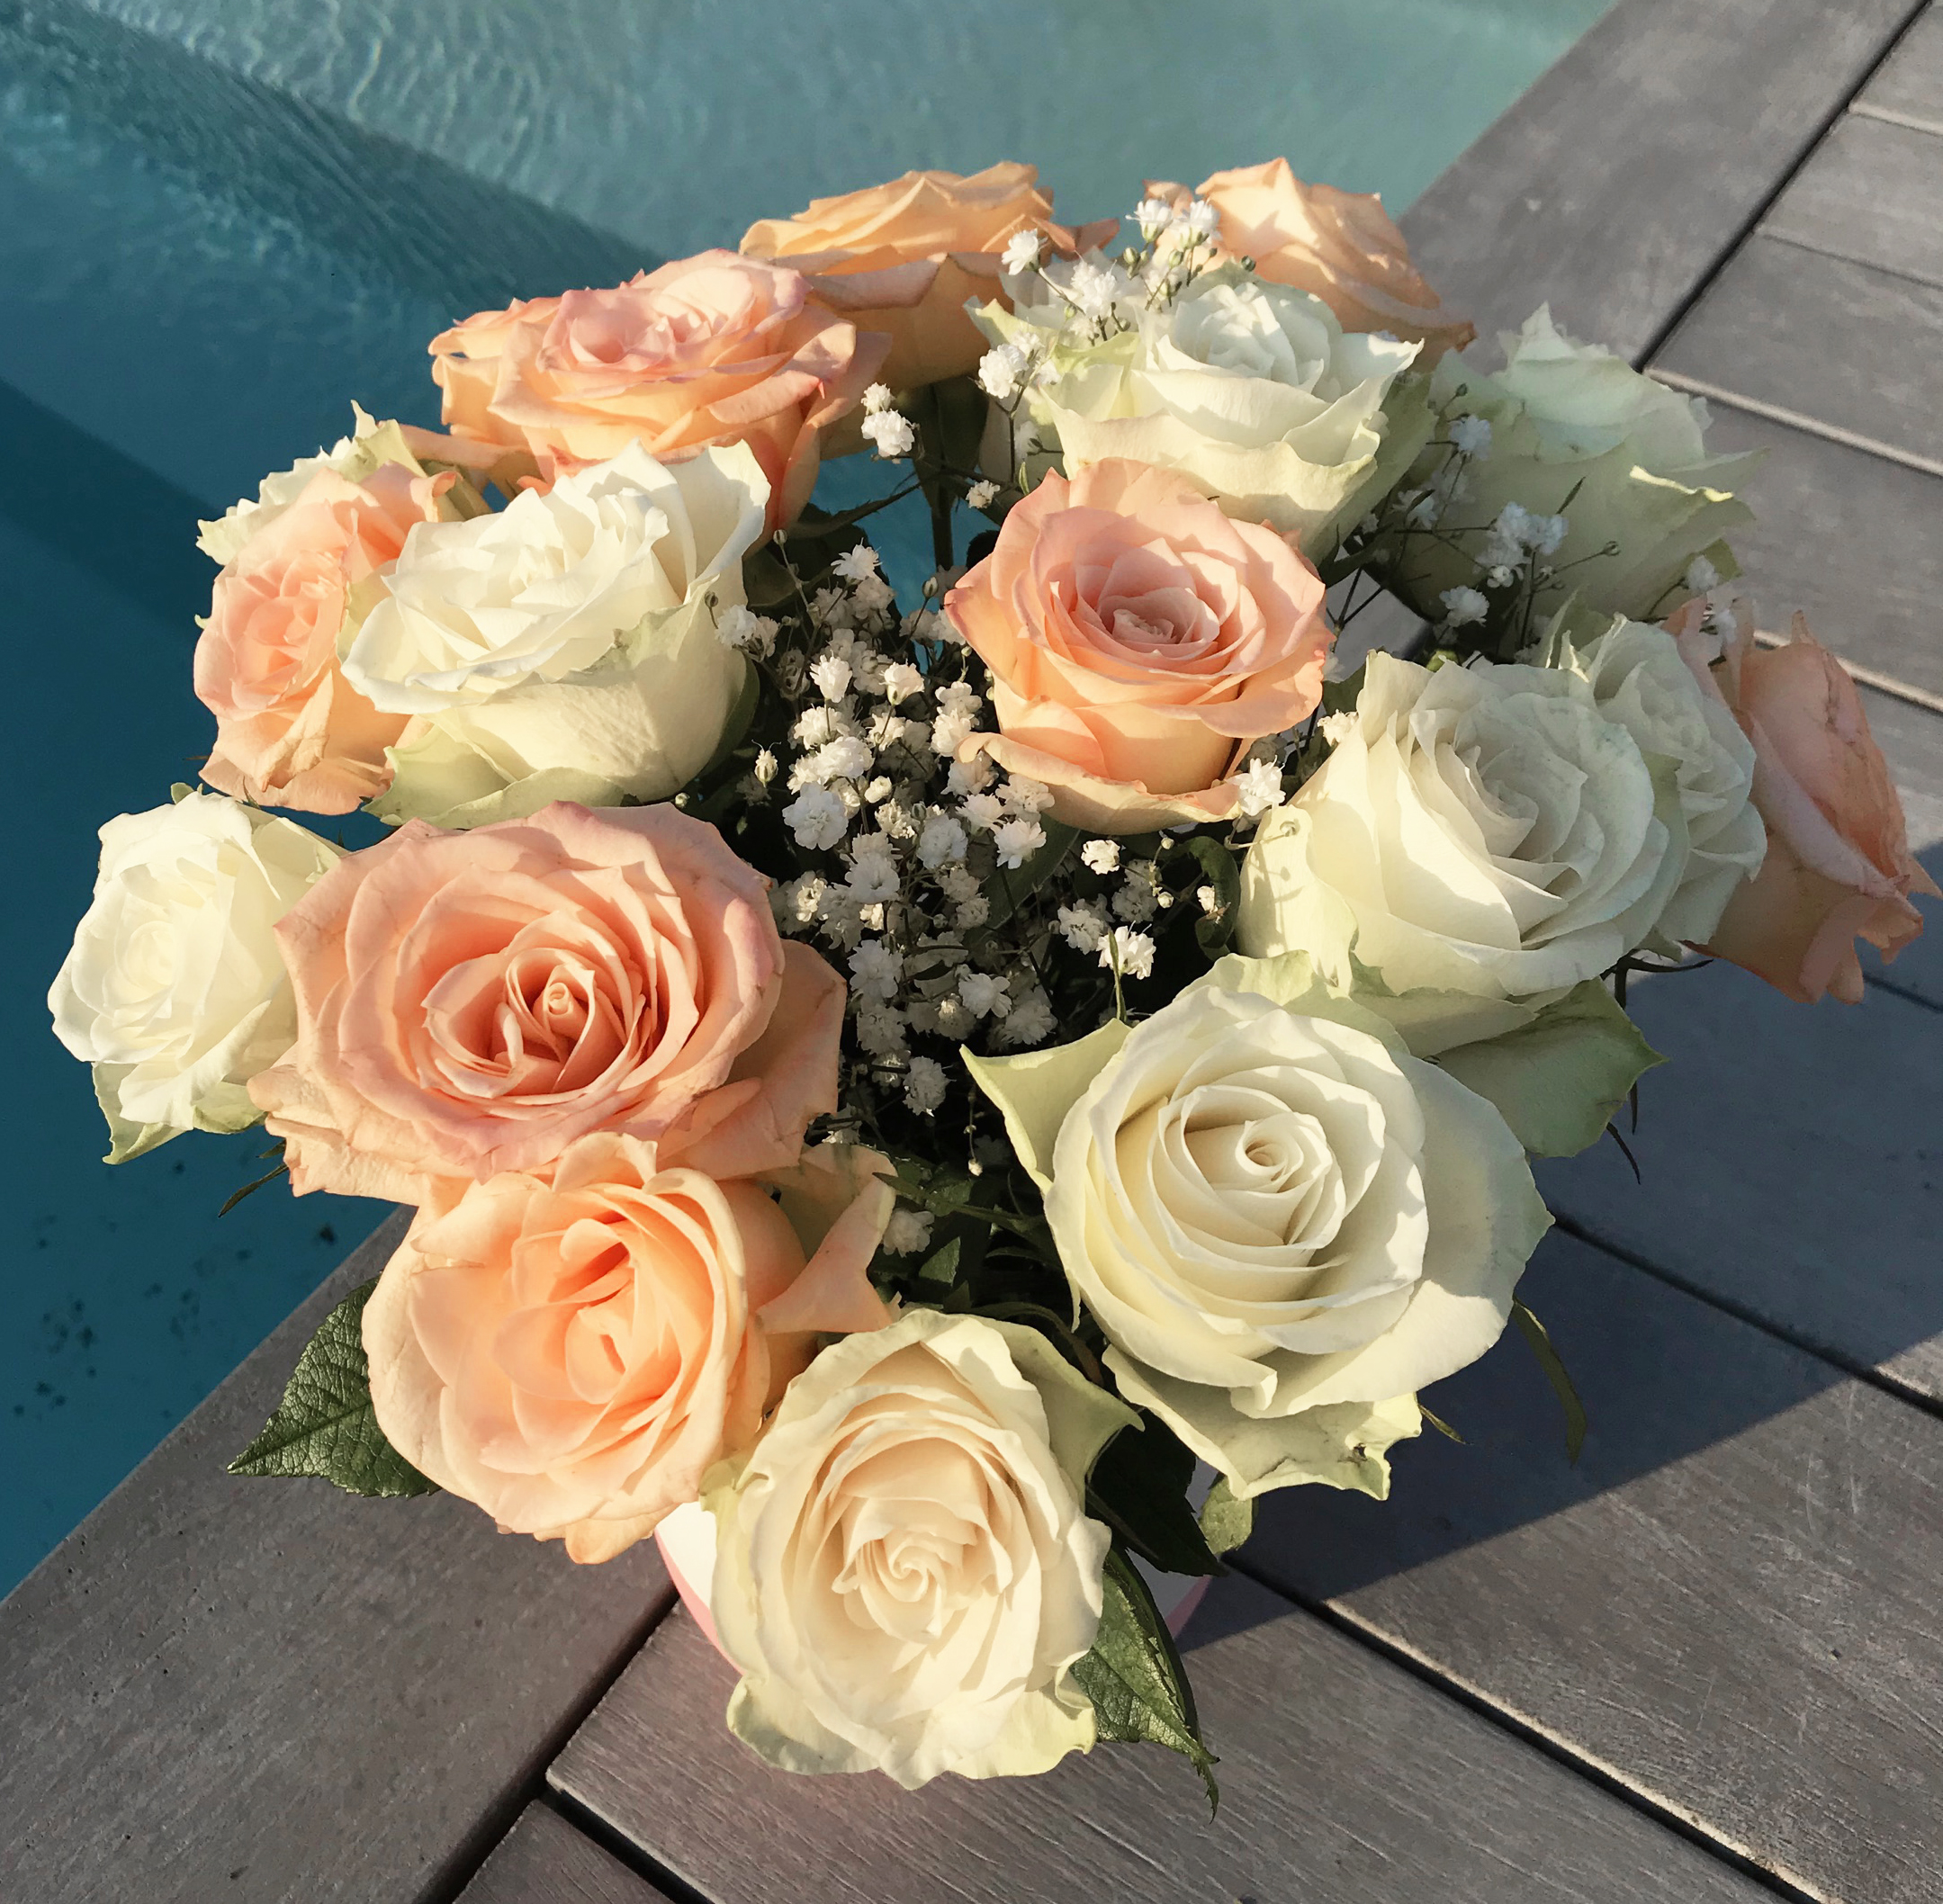 bouquet-prive-bouquet-rose-ete-3